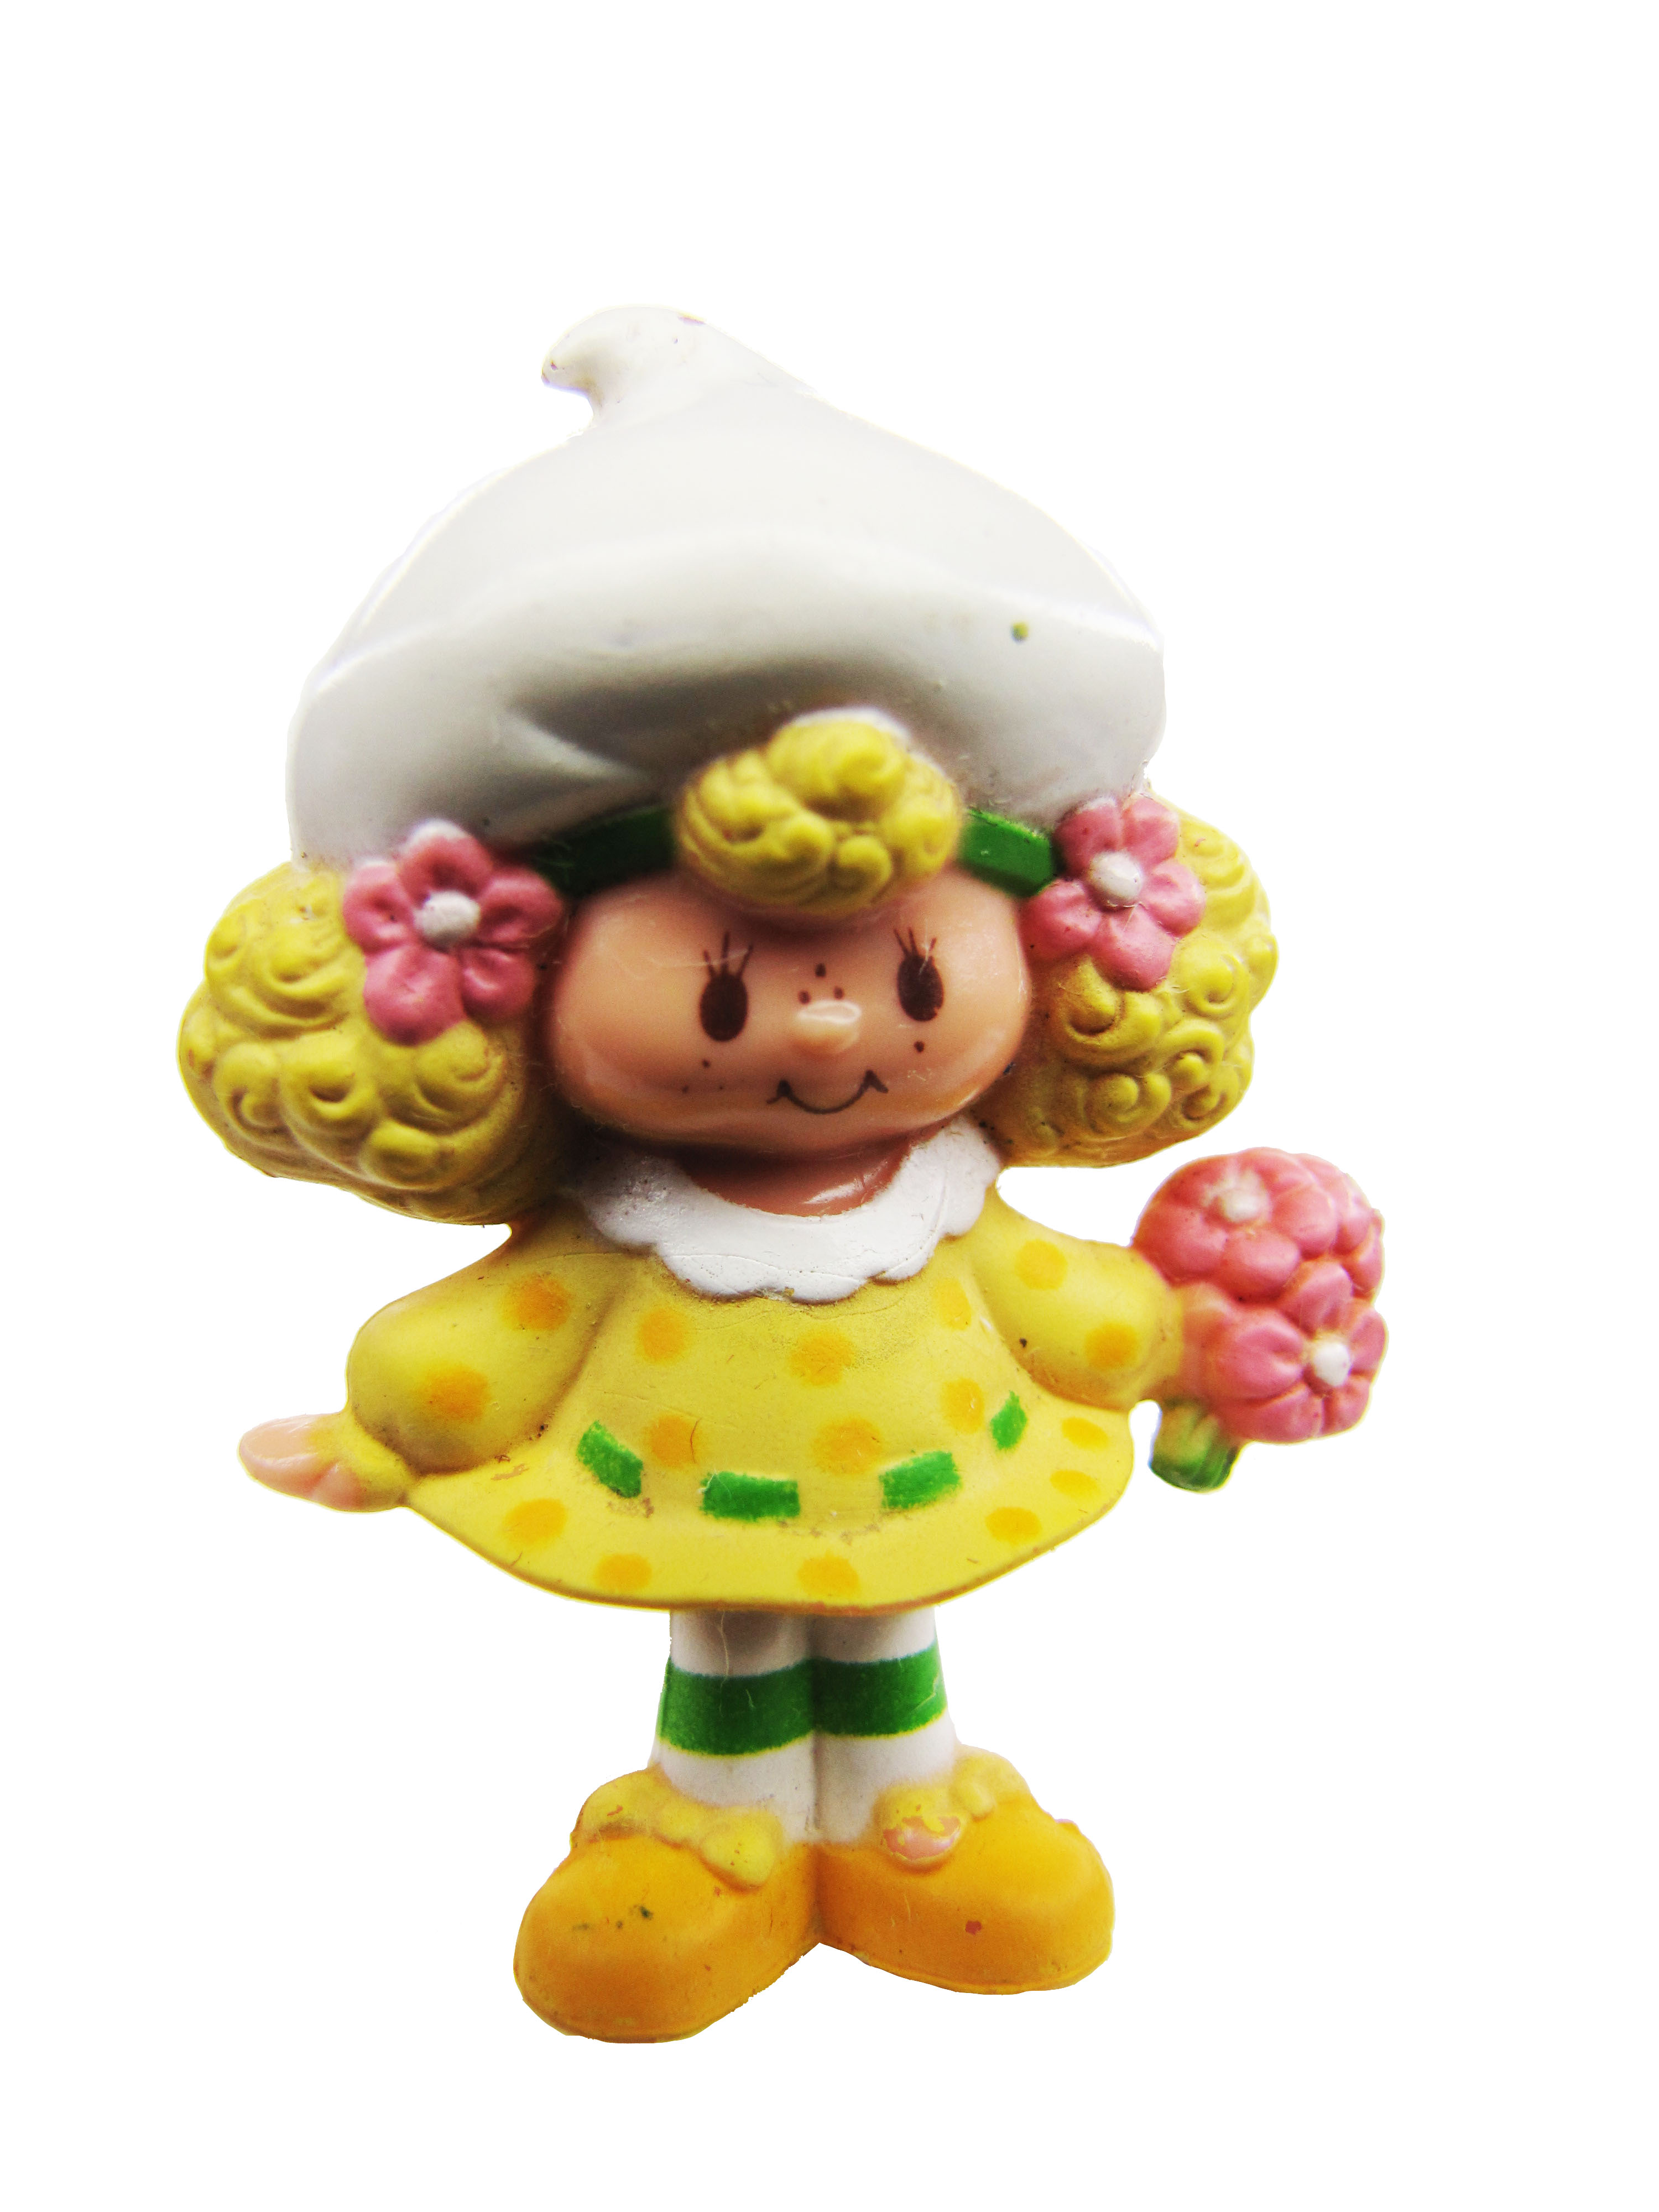 Vintage Strawberry Shortcake Lemon Meringue with Flowers